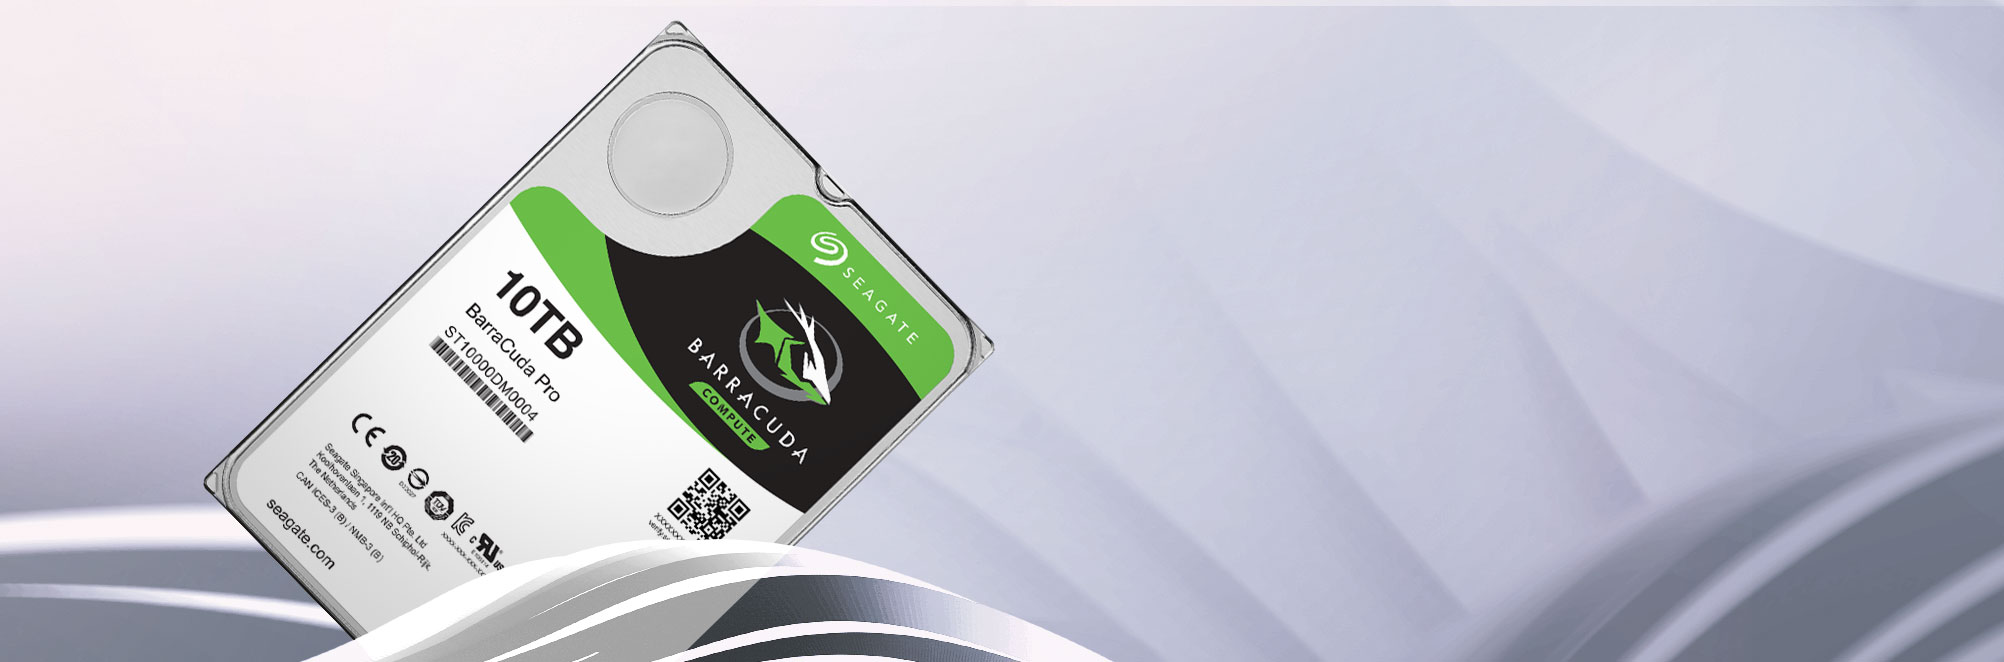 seagate-web-pdp-barracuda-marquee-Row7-2004x662